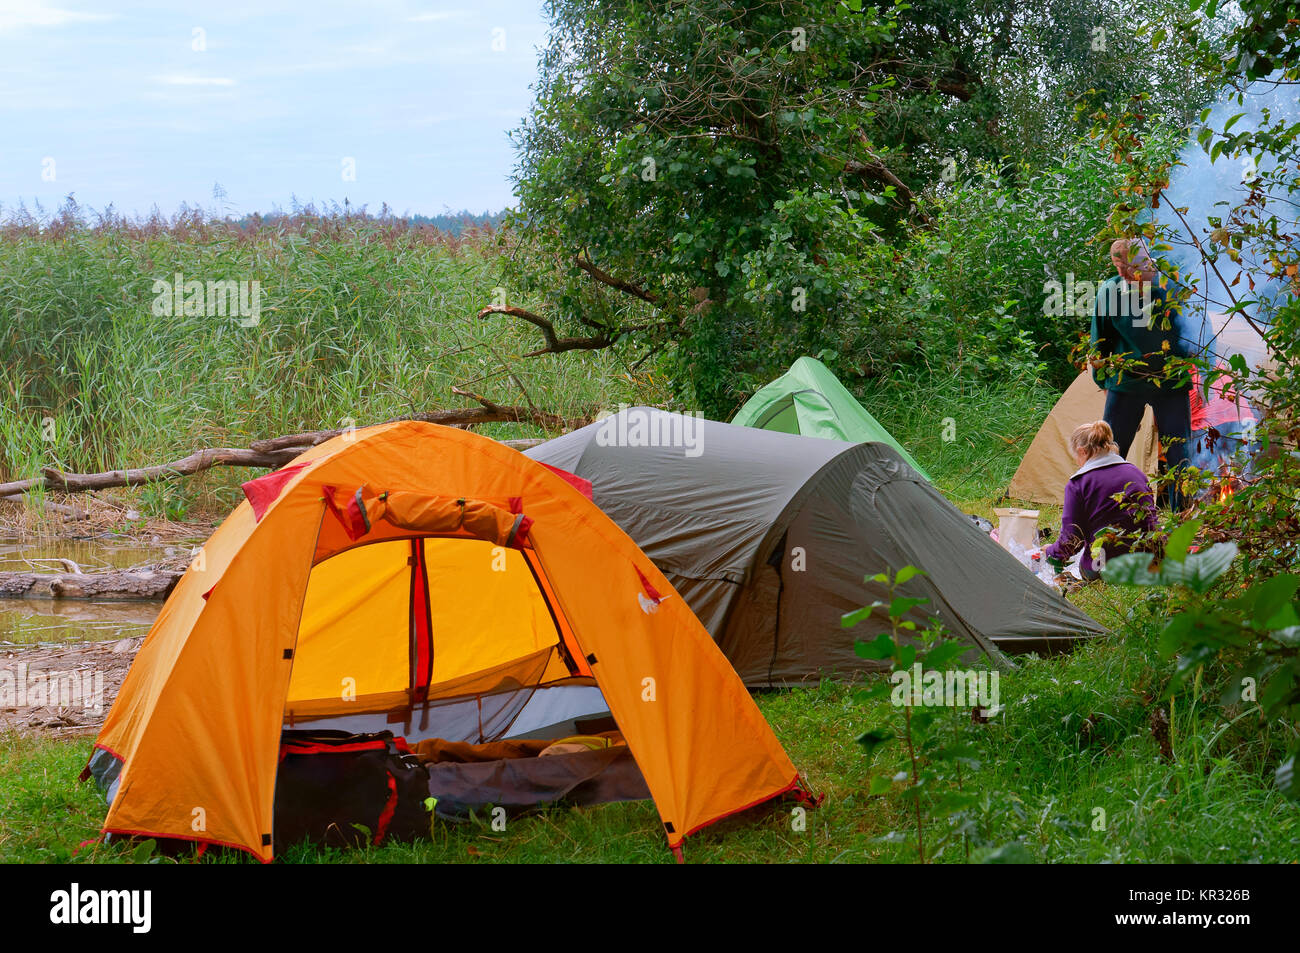 summer holidays in tents tourist tents in the forest near a lake & summer holidays in tents tourist tents in the forest near a lake ...